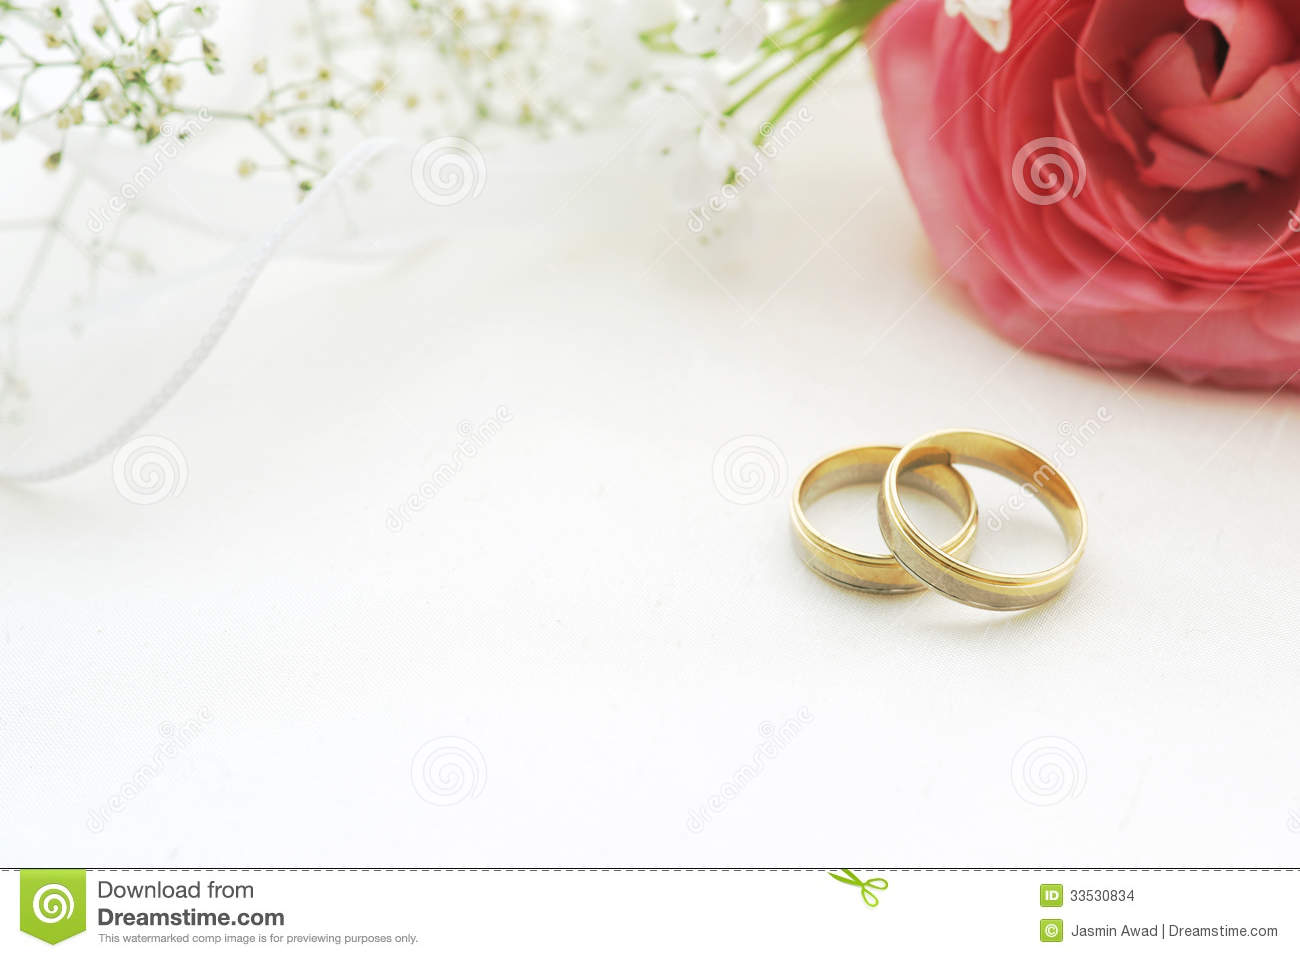 Wedding rings on silk with flowers and copy space.